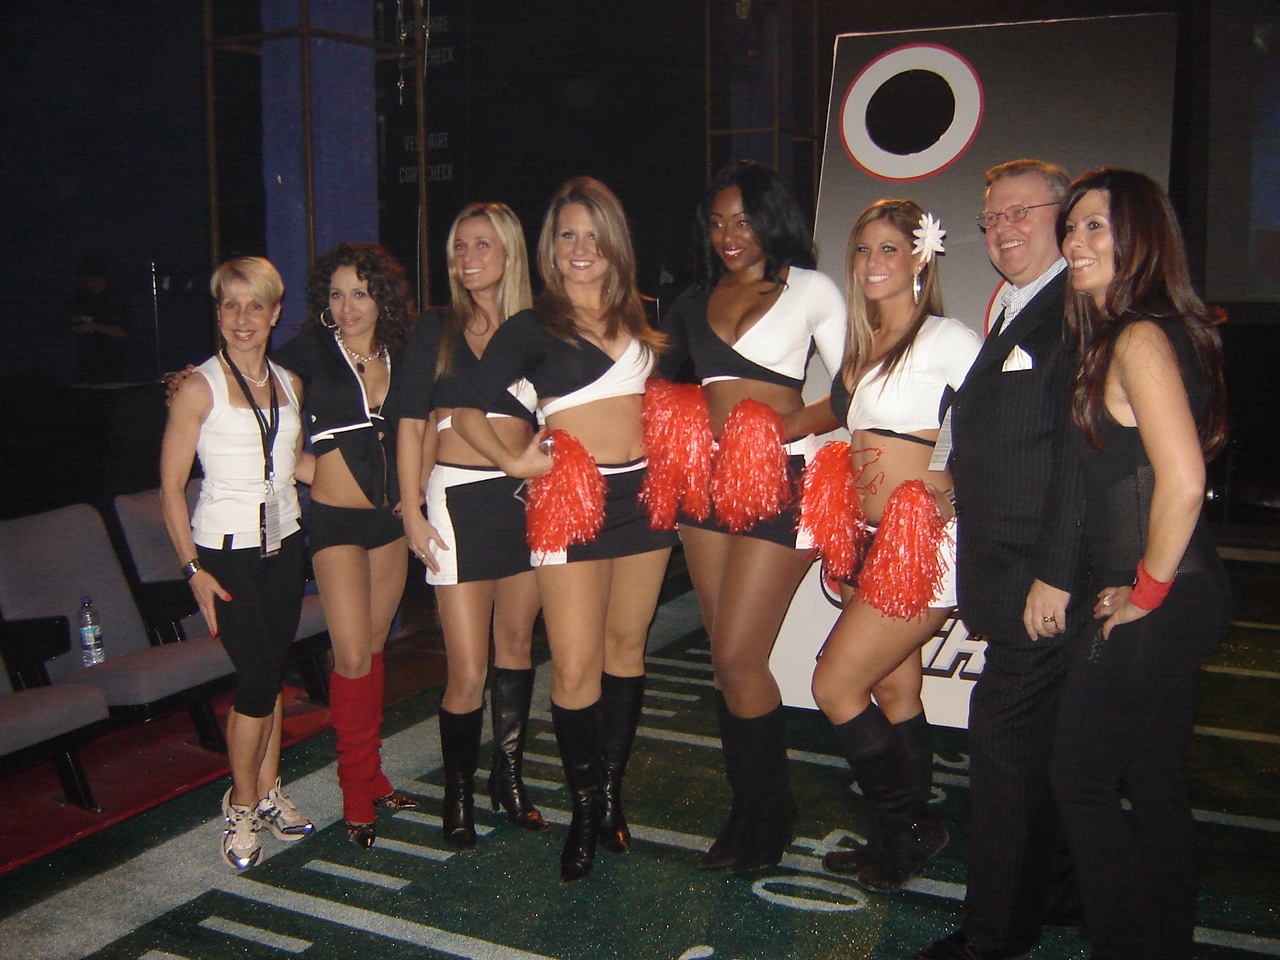 nov.08_-_montreal_-_maxim_grey_cup_party_013